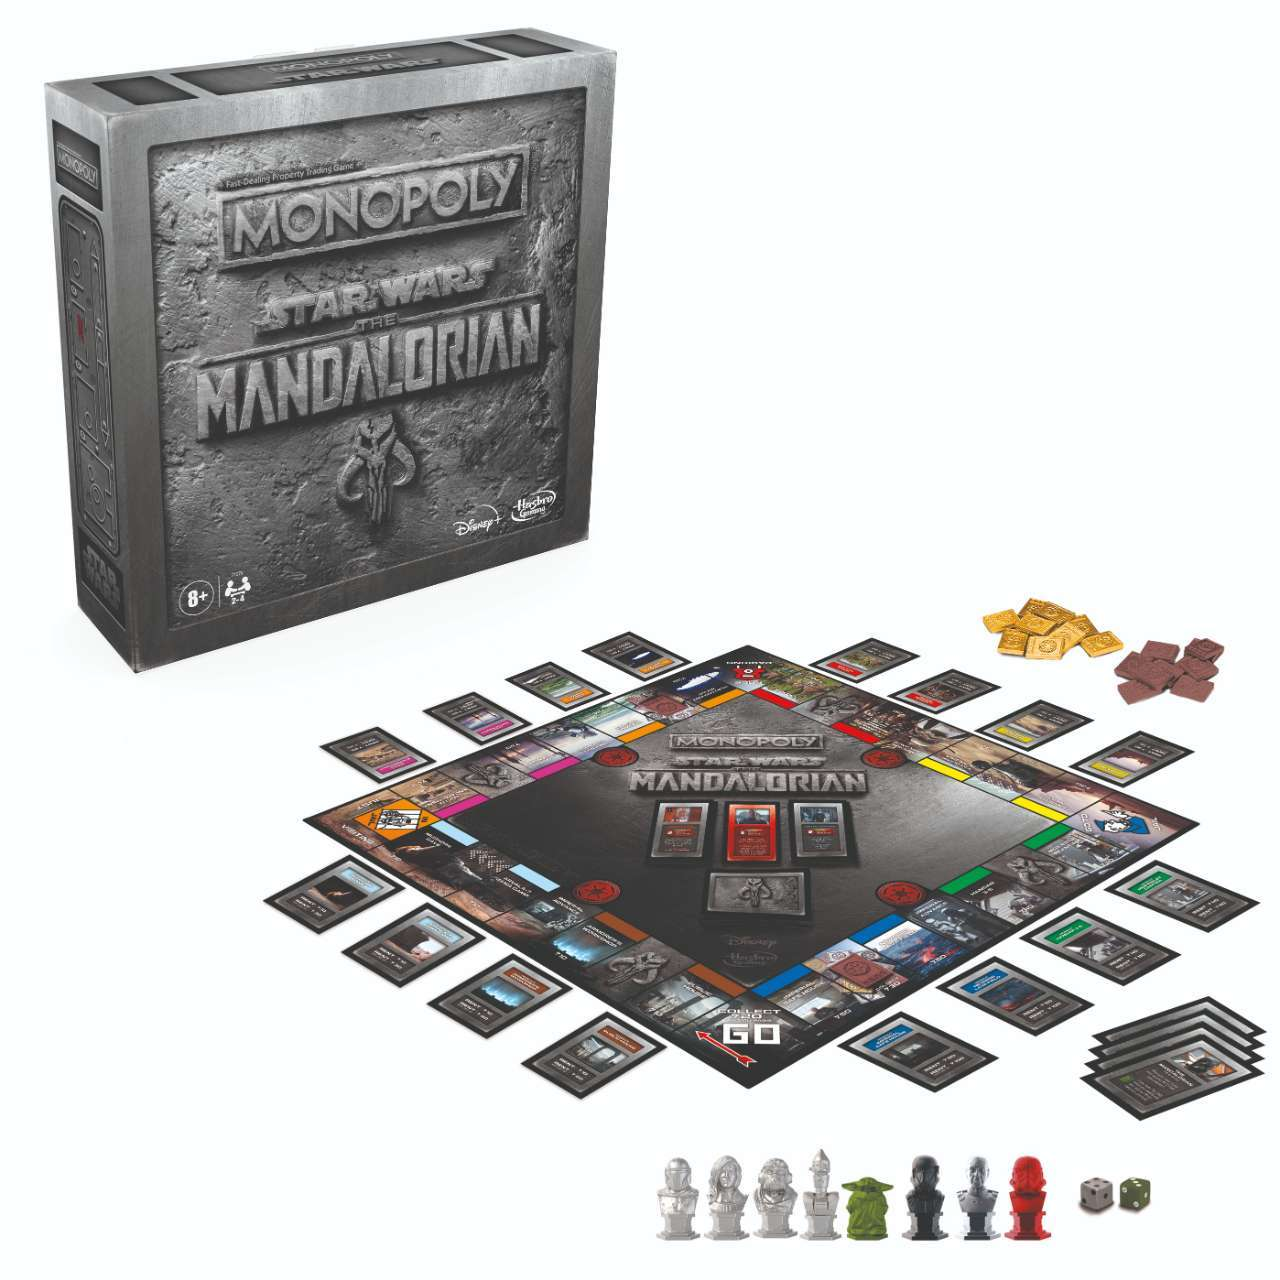 Star Wars: The Mandalorian Monopoly Has Launched